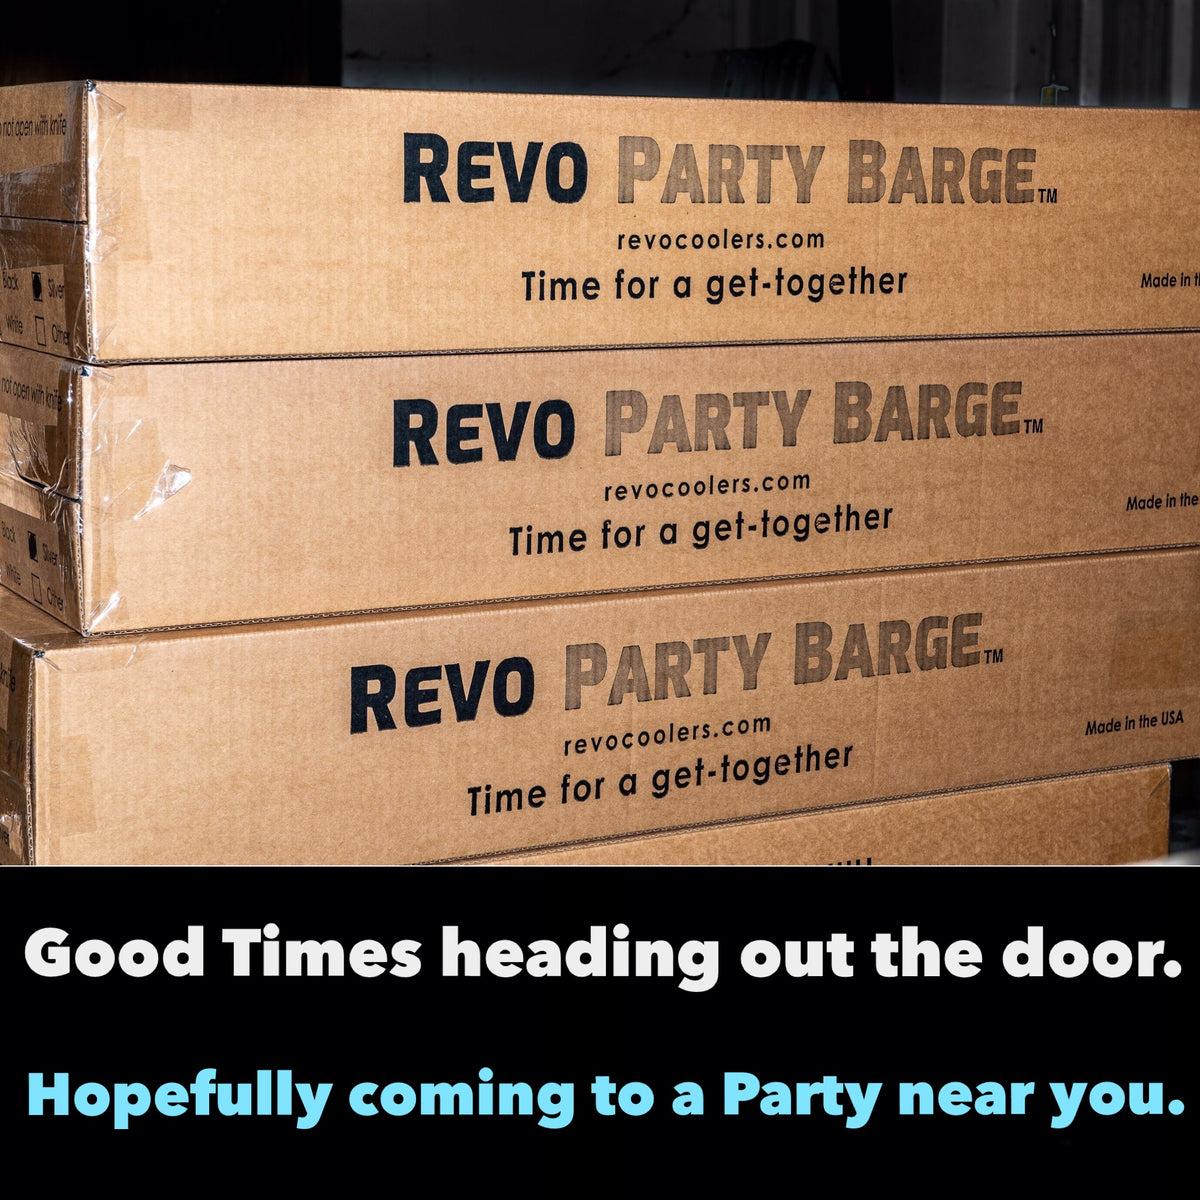 REVO Party Barge Cooler is an insulated beverage tub, wine bucket, champagne bucket, beer bucket, ice bucket and mimosa bar. Used for entertaining at home, bachelorette party, bridal shower, wine party, tailgating, open house, catering and bartending.